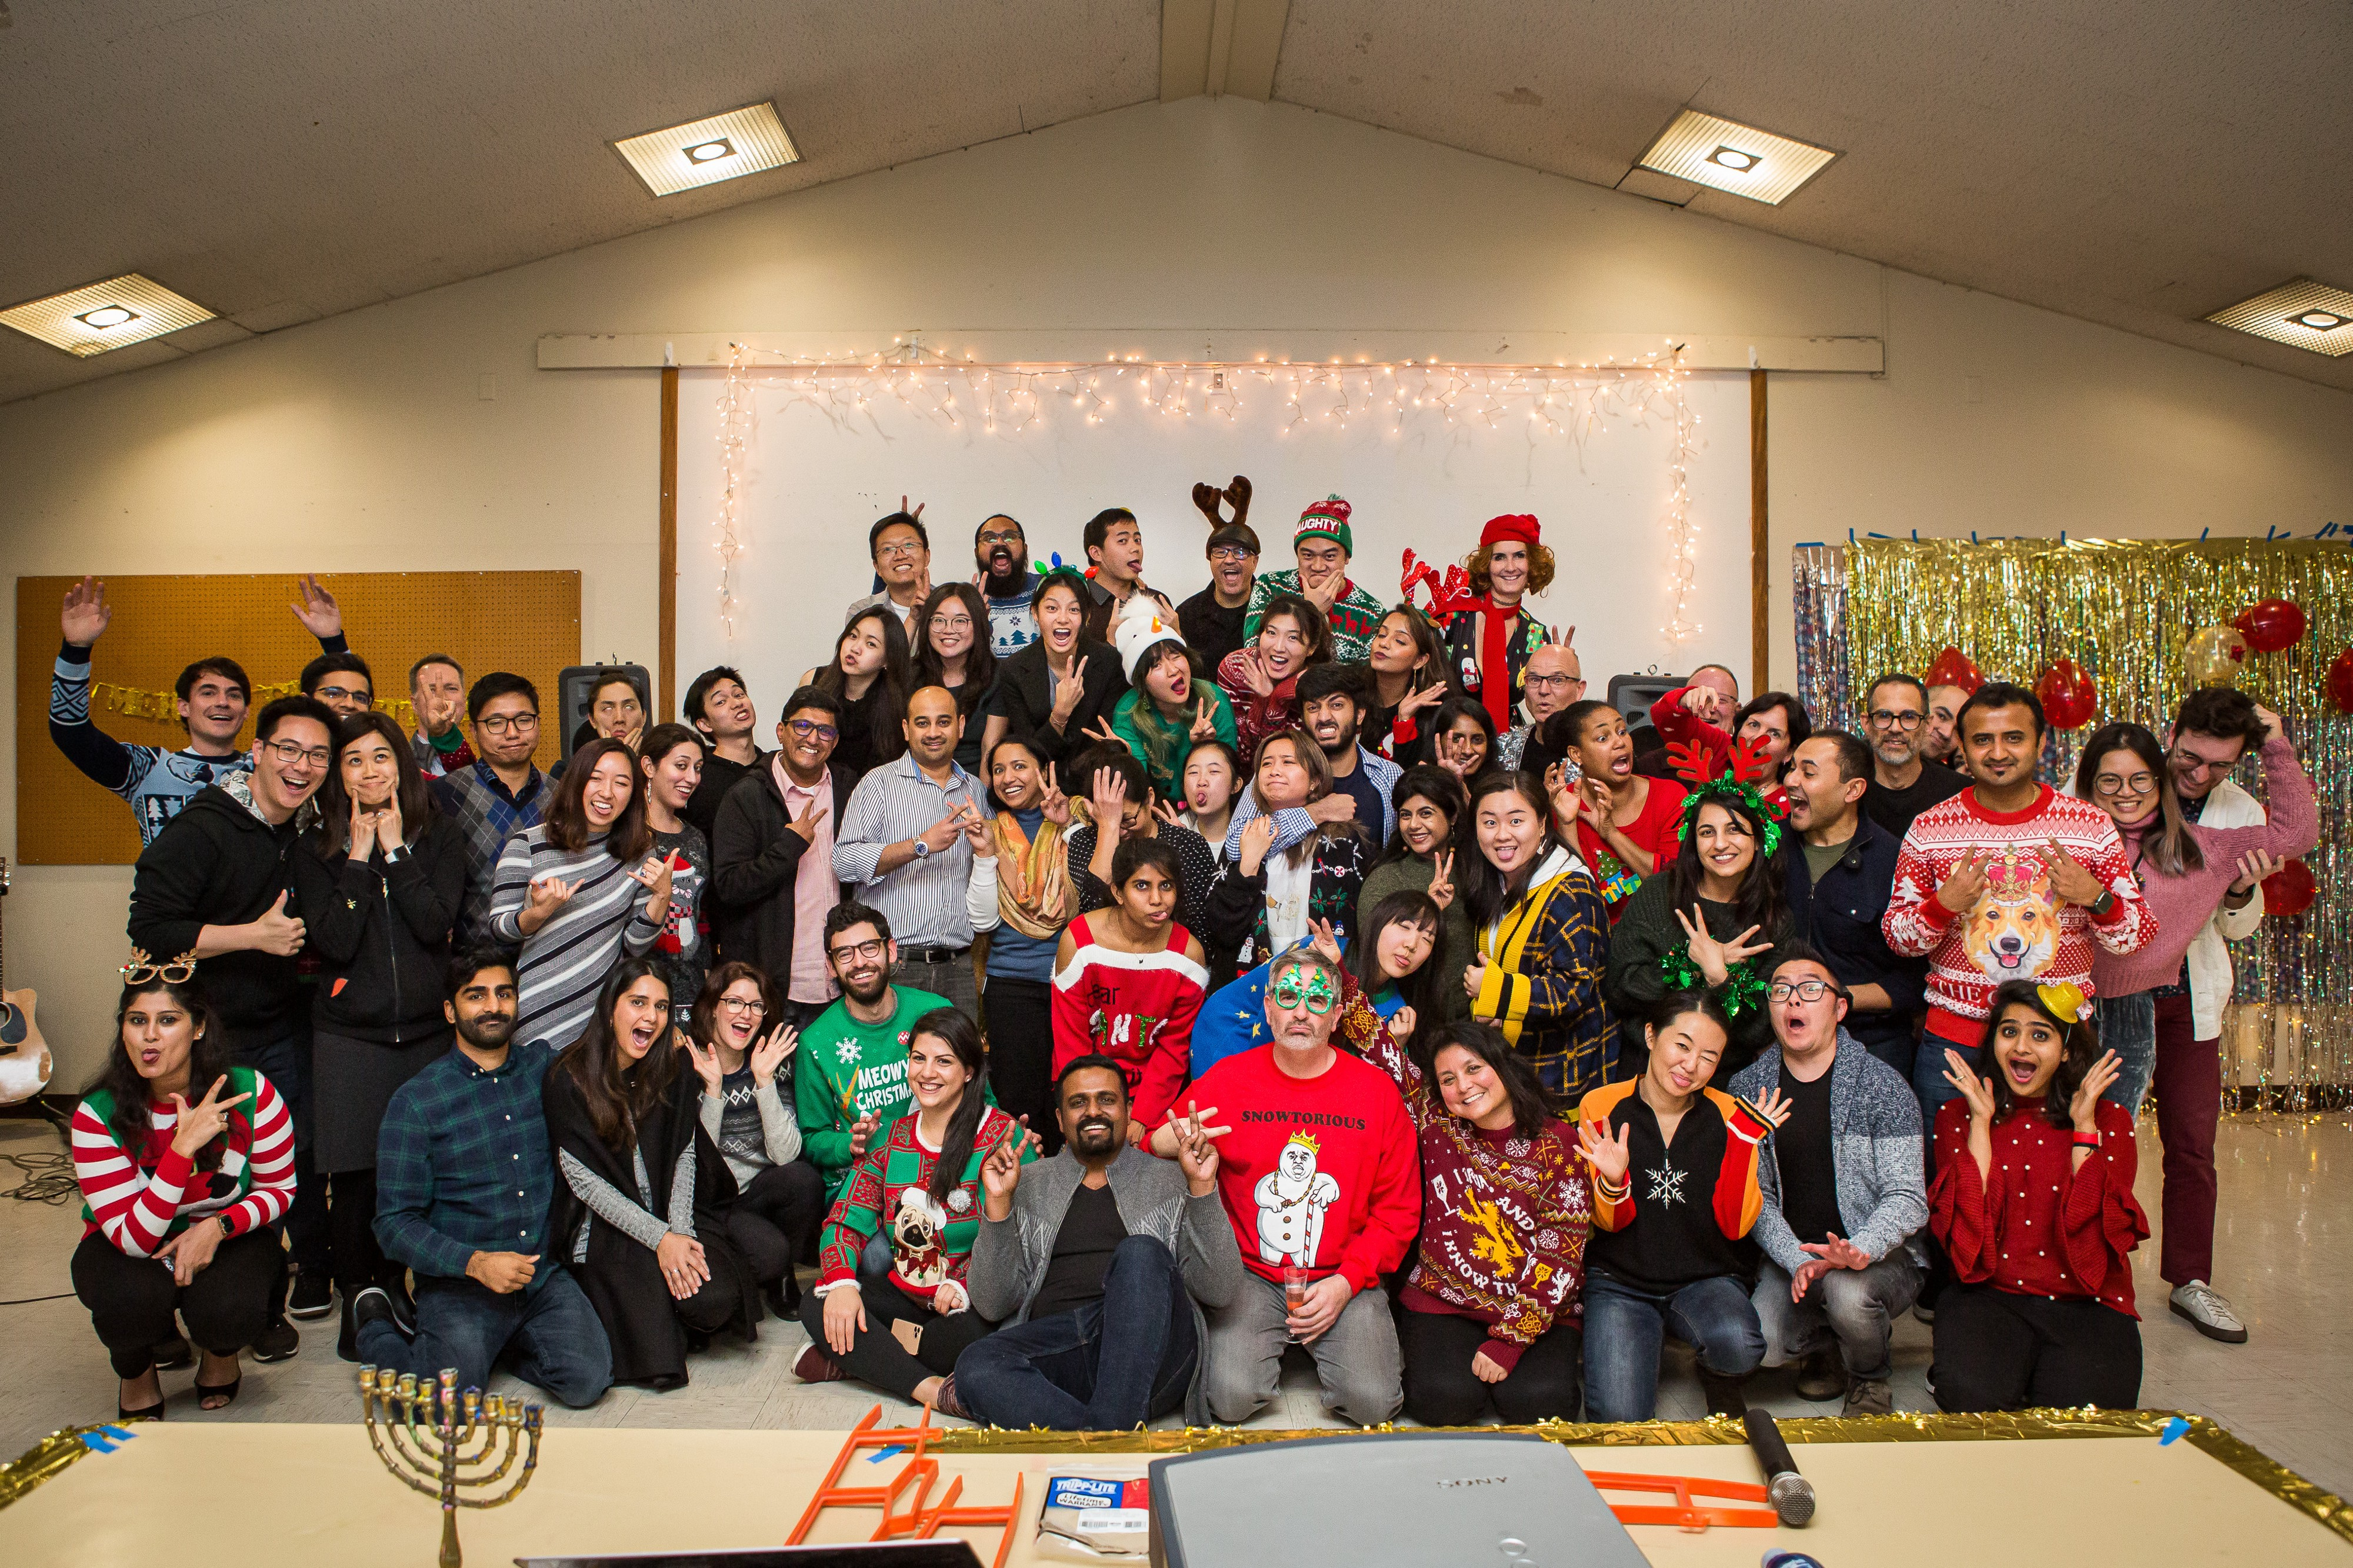 A design team making funny faces at their holiday party